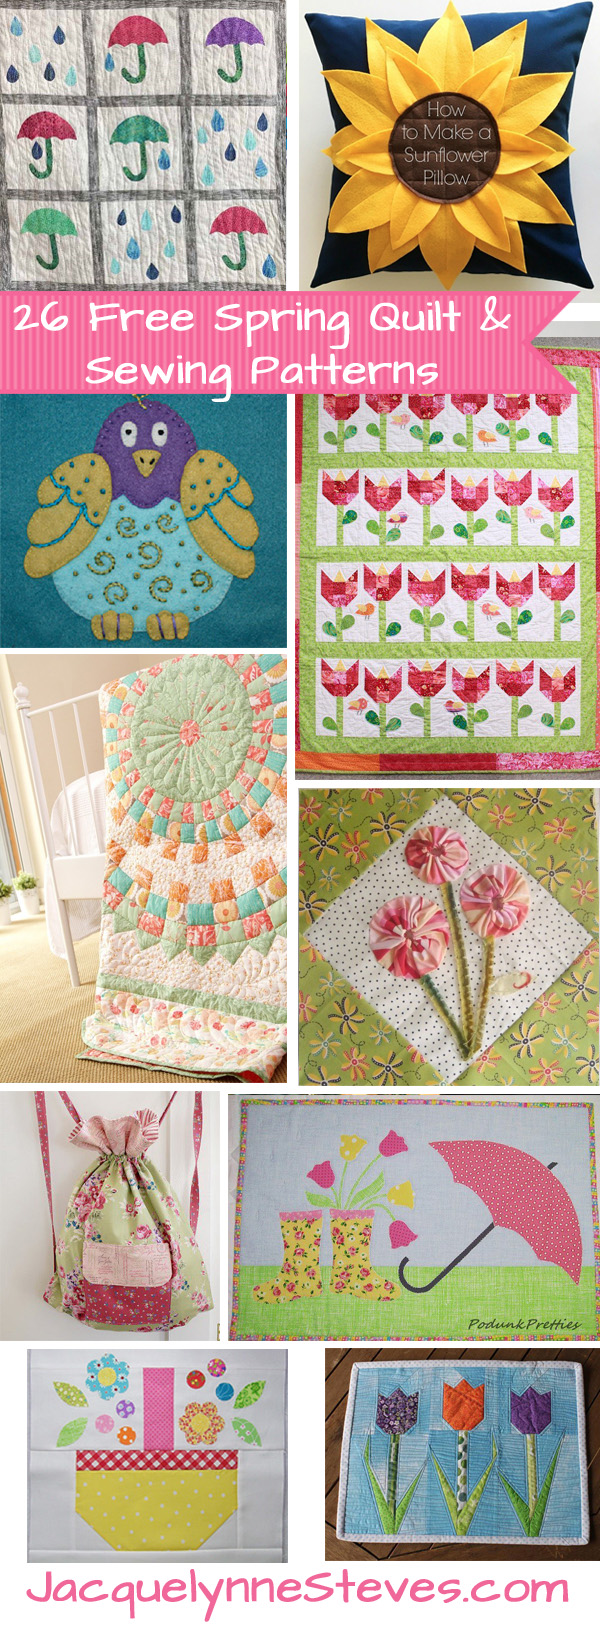 26 Free Spring Quilt & Sewing Projects